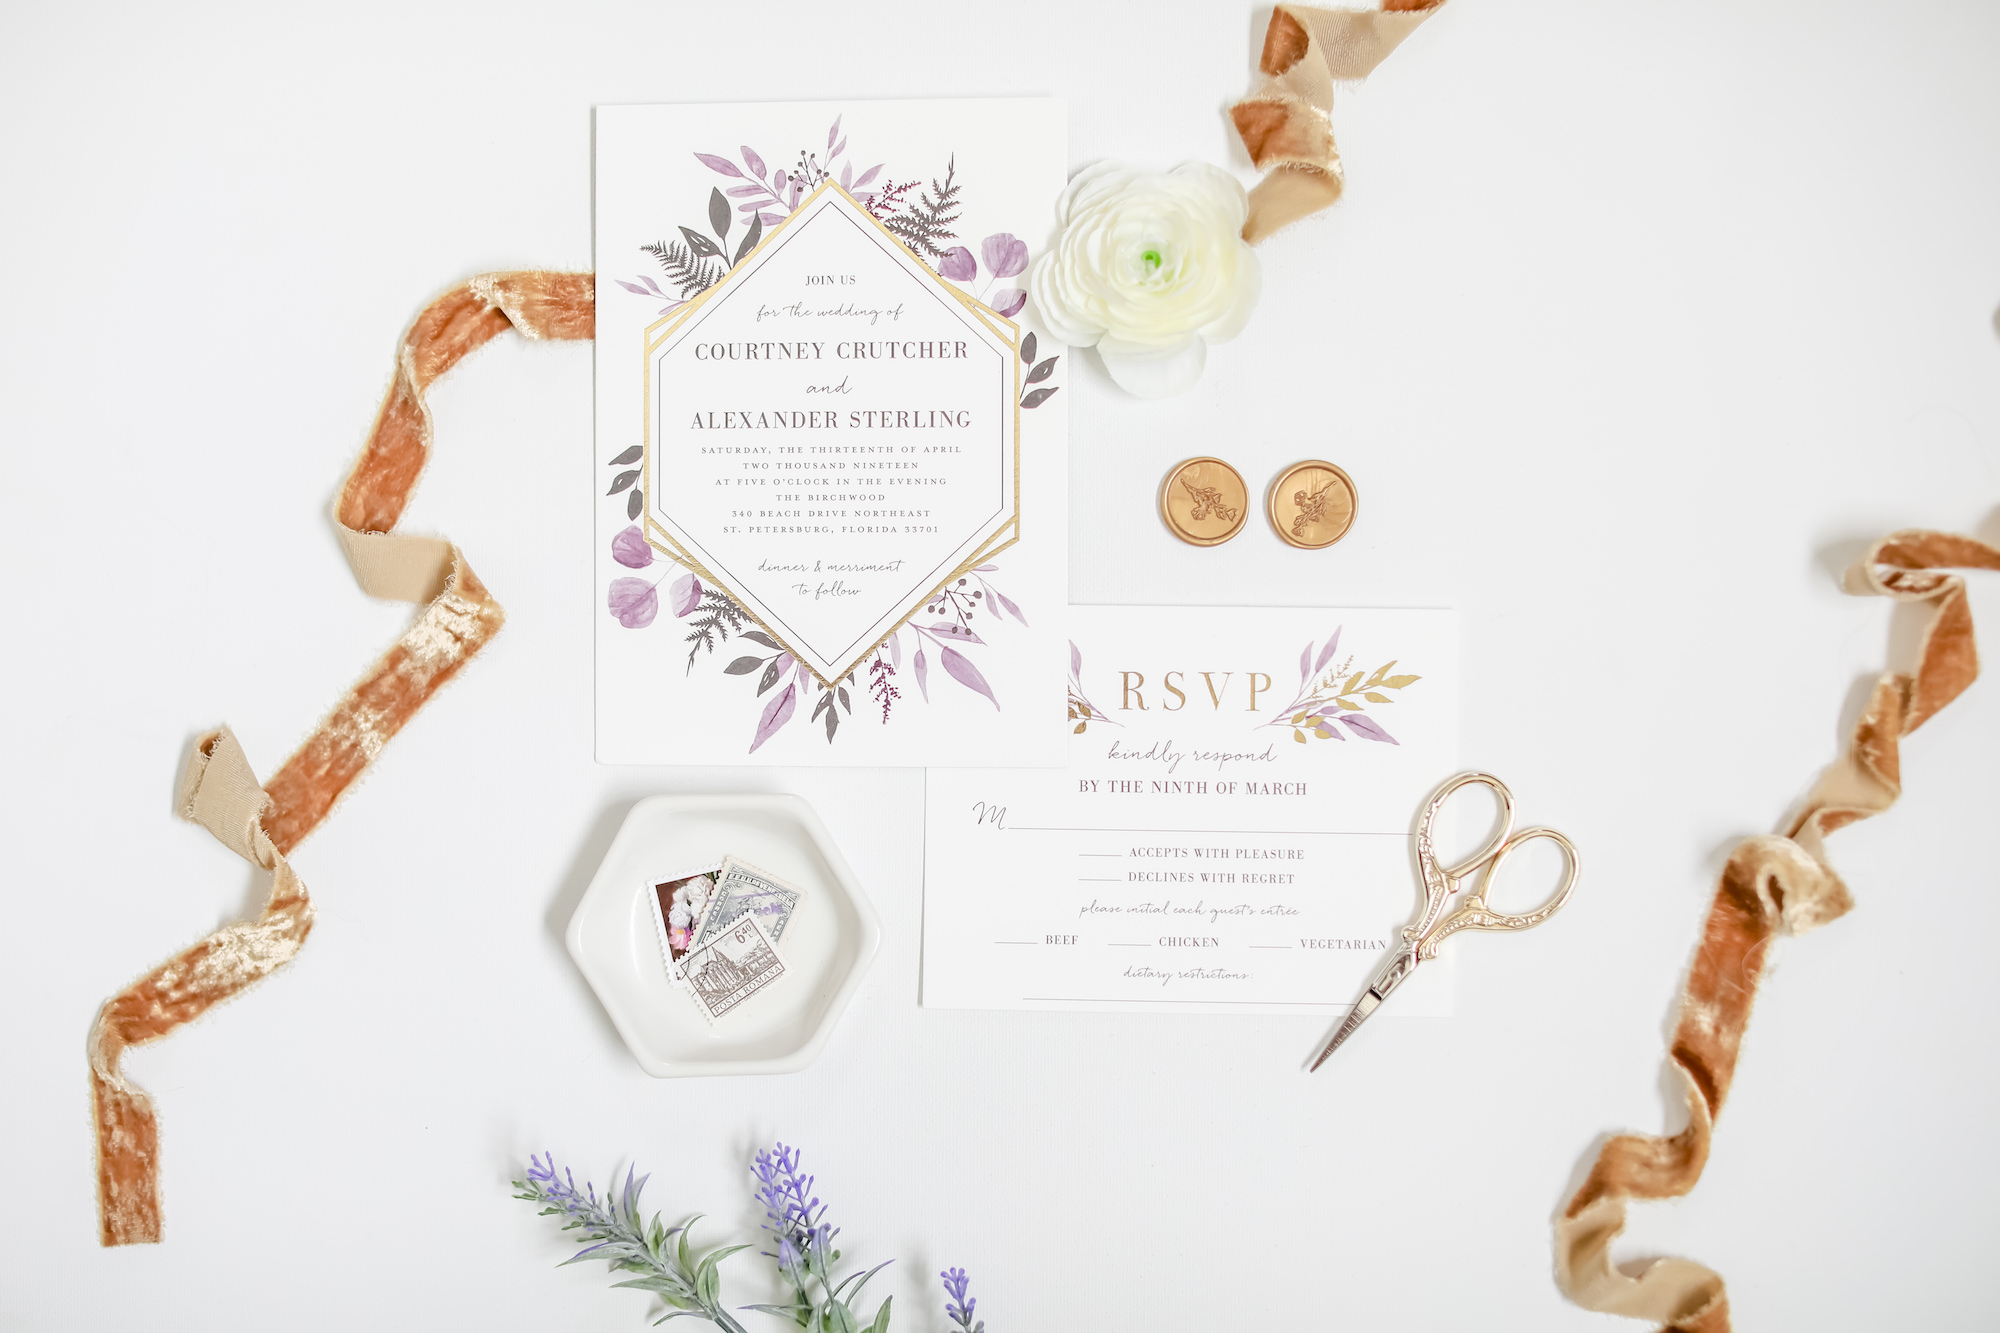 Florida Spring Inspired Wedding Invitation and Stationary Suite with RSVP Card, Mauve, Purple watercolor Floral Design, Gold Geometric Accents   Tampa Bay Wedding Photographer Lifelong Photography Studio   Downtown St. Pete Wedding Planner Blue Skies Weddings and Events